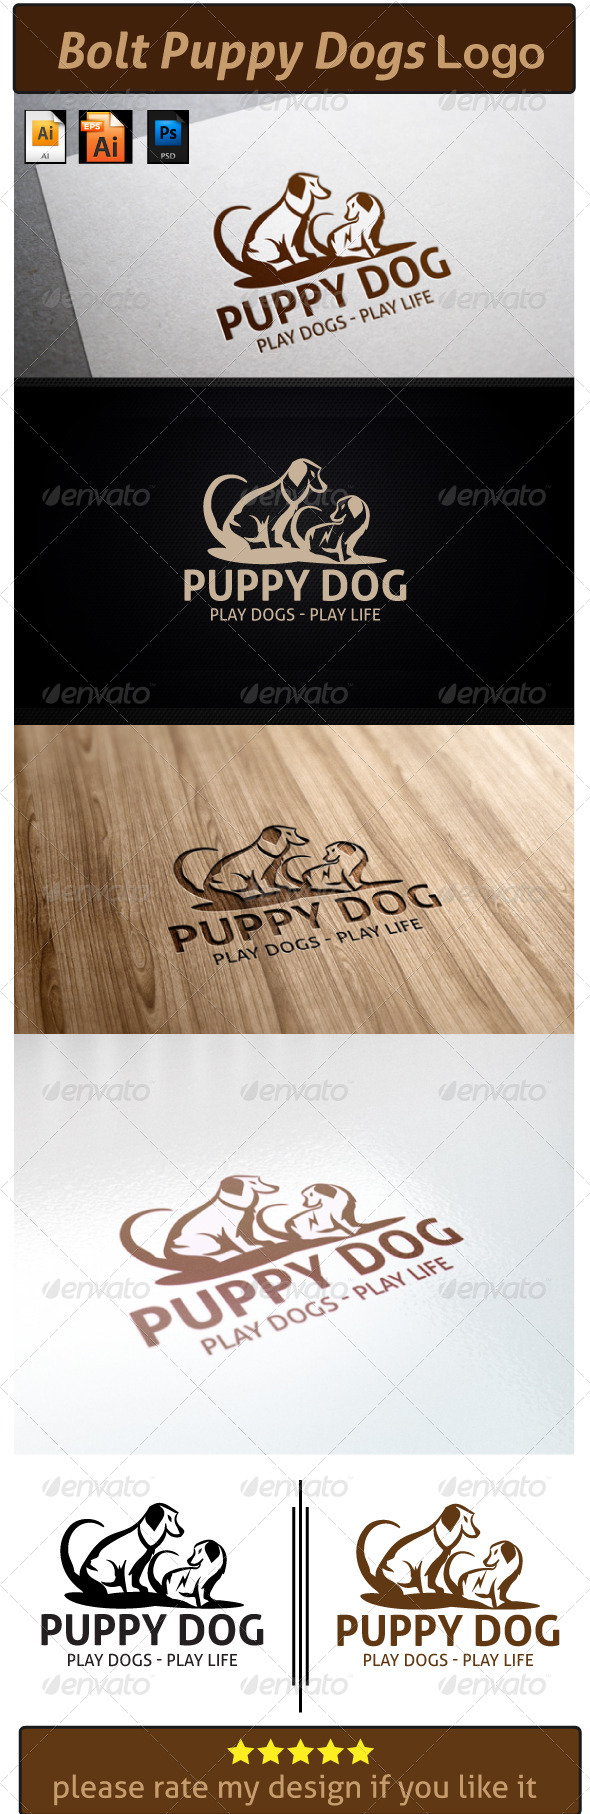 Bolt Puppy Dogs Logo - Animals Logo Templates